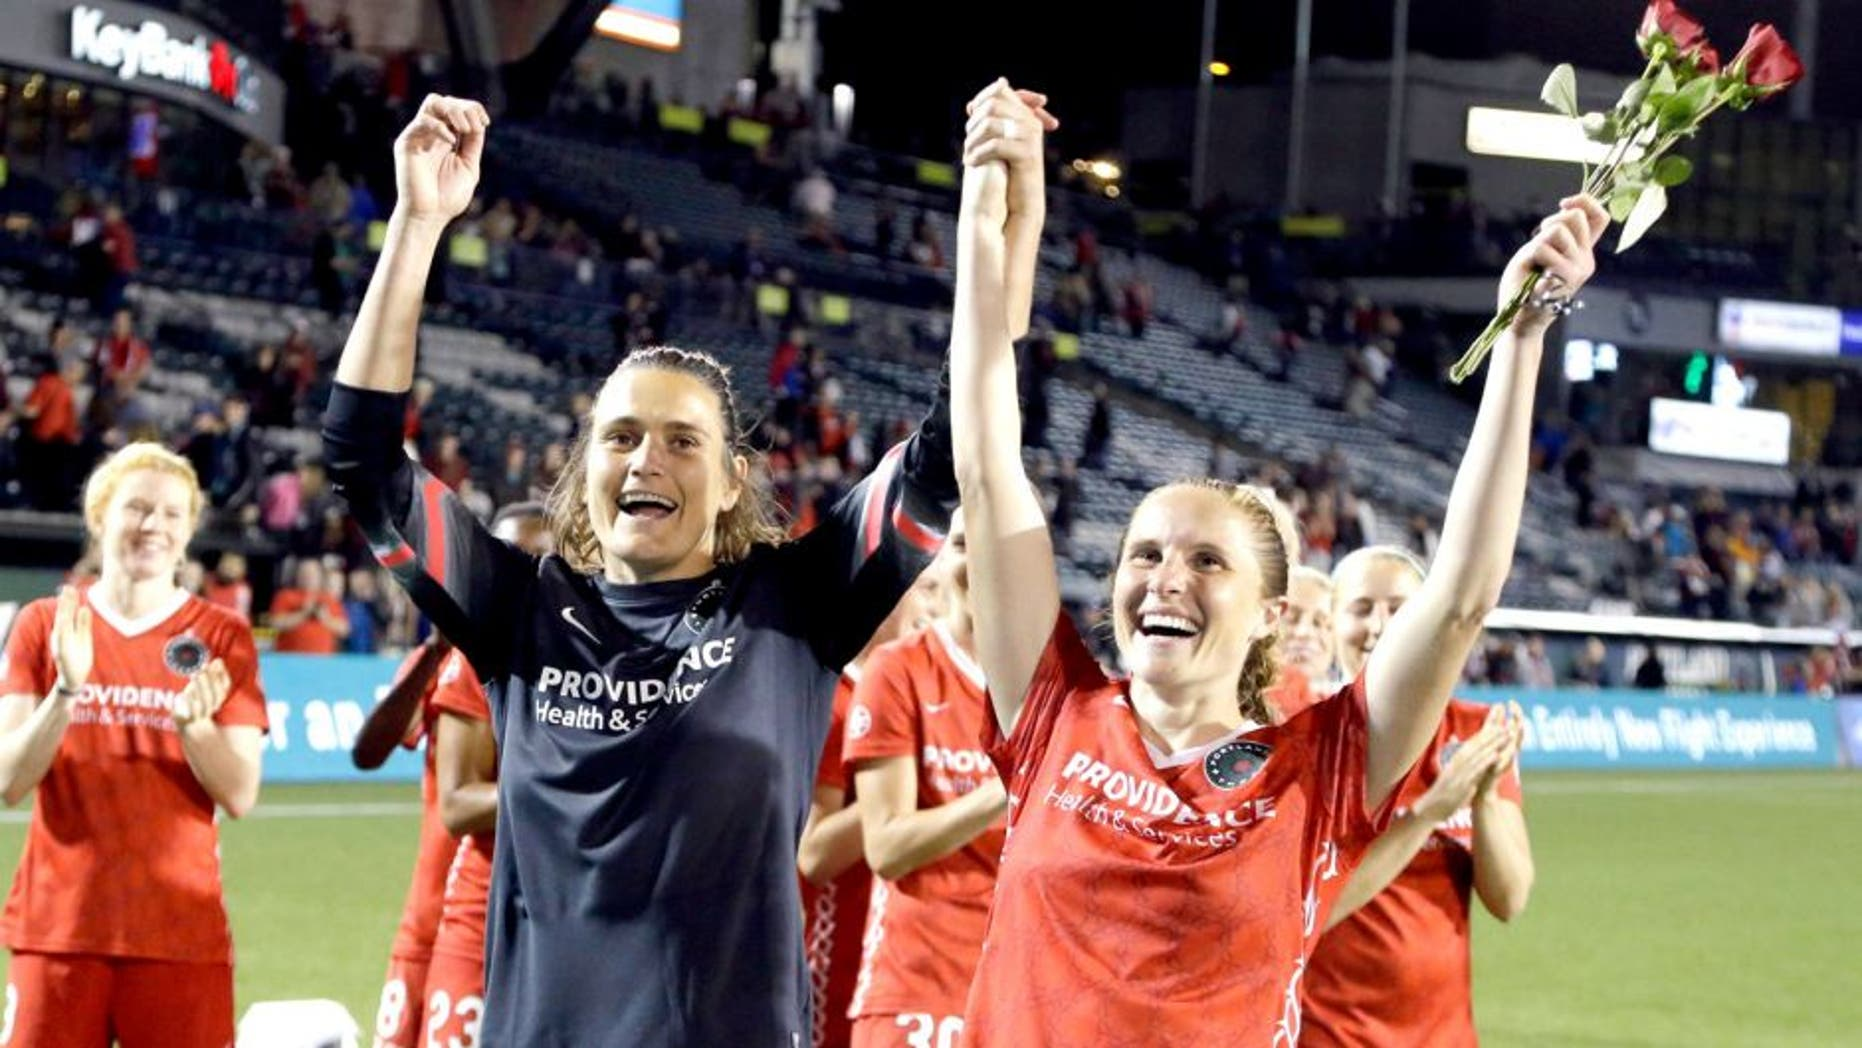 Portland Thorns goalkeeper Nadine Angerer, left, and defender Rachel Van Hollebeke celebrate after an NWSL soccer match against the Washington Spirit in Portland, Ore., Sunday, Aug. 30, 2015. Both players have announced their retirement from soccer. The teams tied 3-3. (AP Photo/Don Ryan)